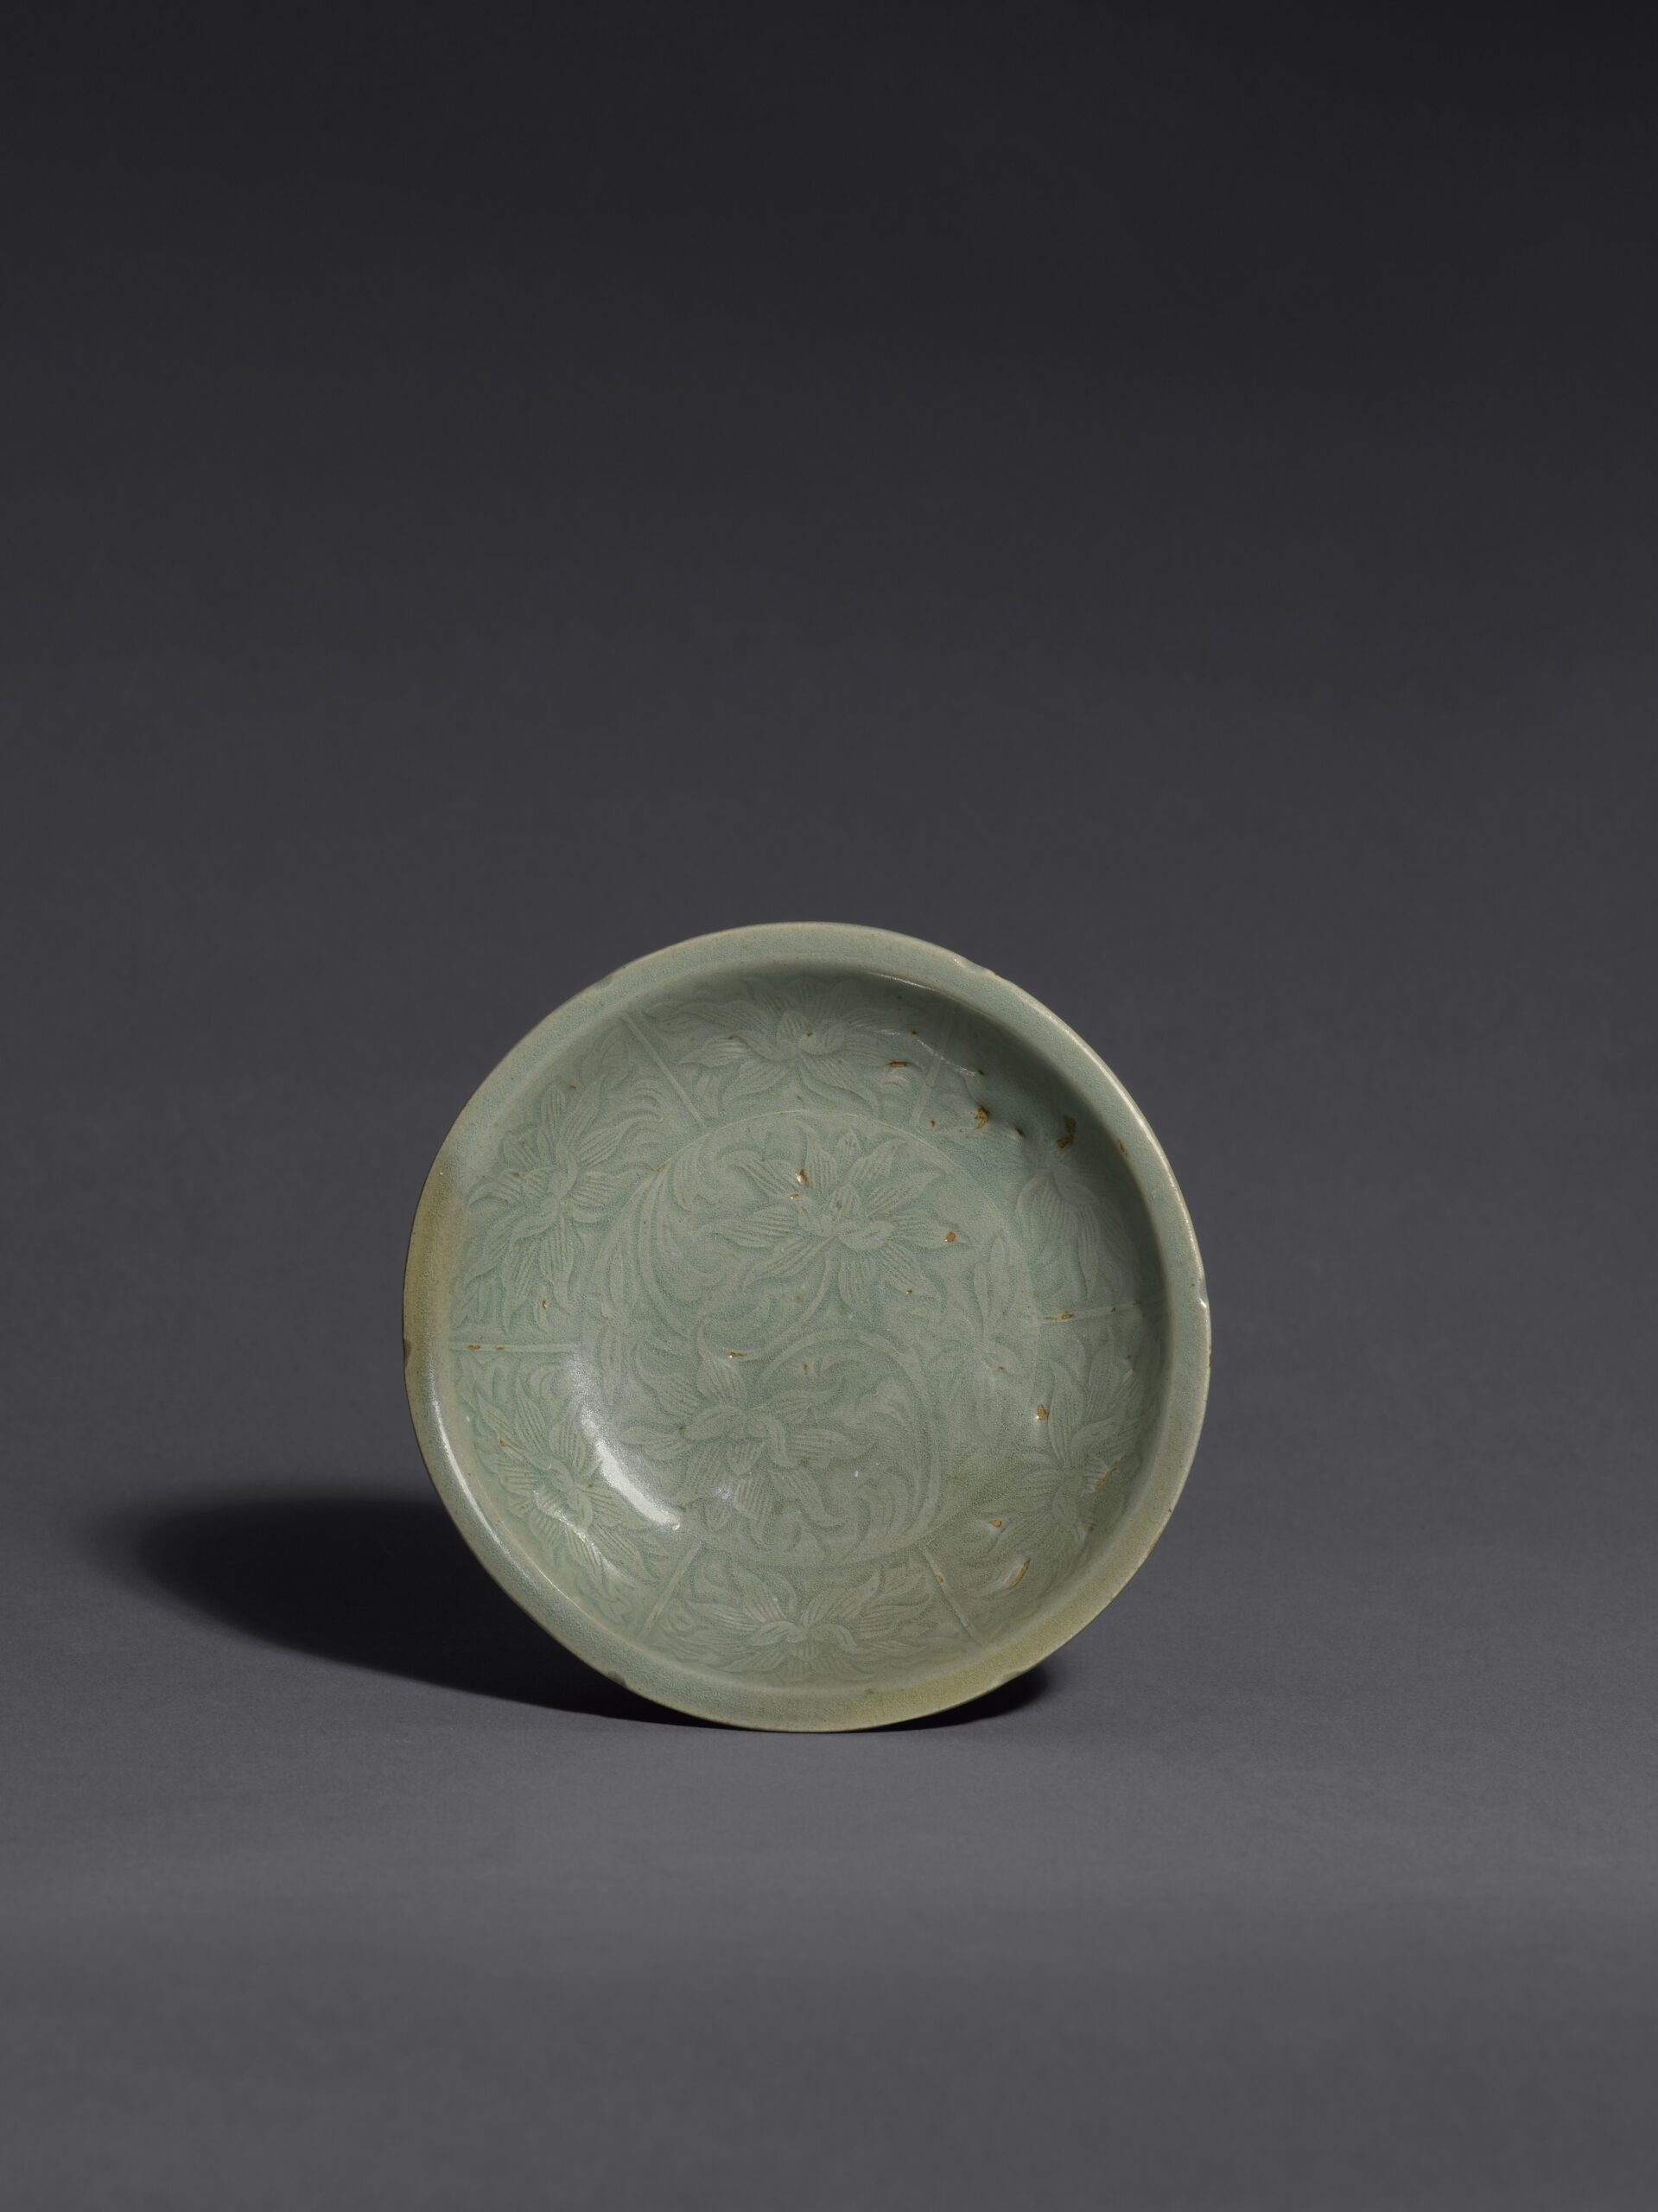 A CARVED KOREAN CELADON LOTUS-PATTERN FLOWER-SHAPED DISH Goryeo dynasty (918-1392), 12th century Diameter: 11.8 cm, 4⅝ inches 高麗 十二世紀 青瓷刻蓮花紋碟 直徑11.8釐米